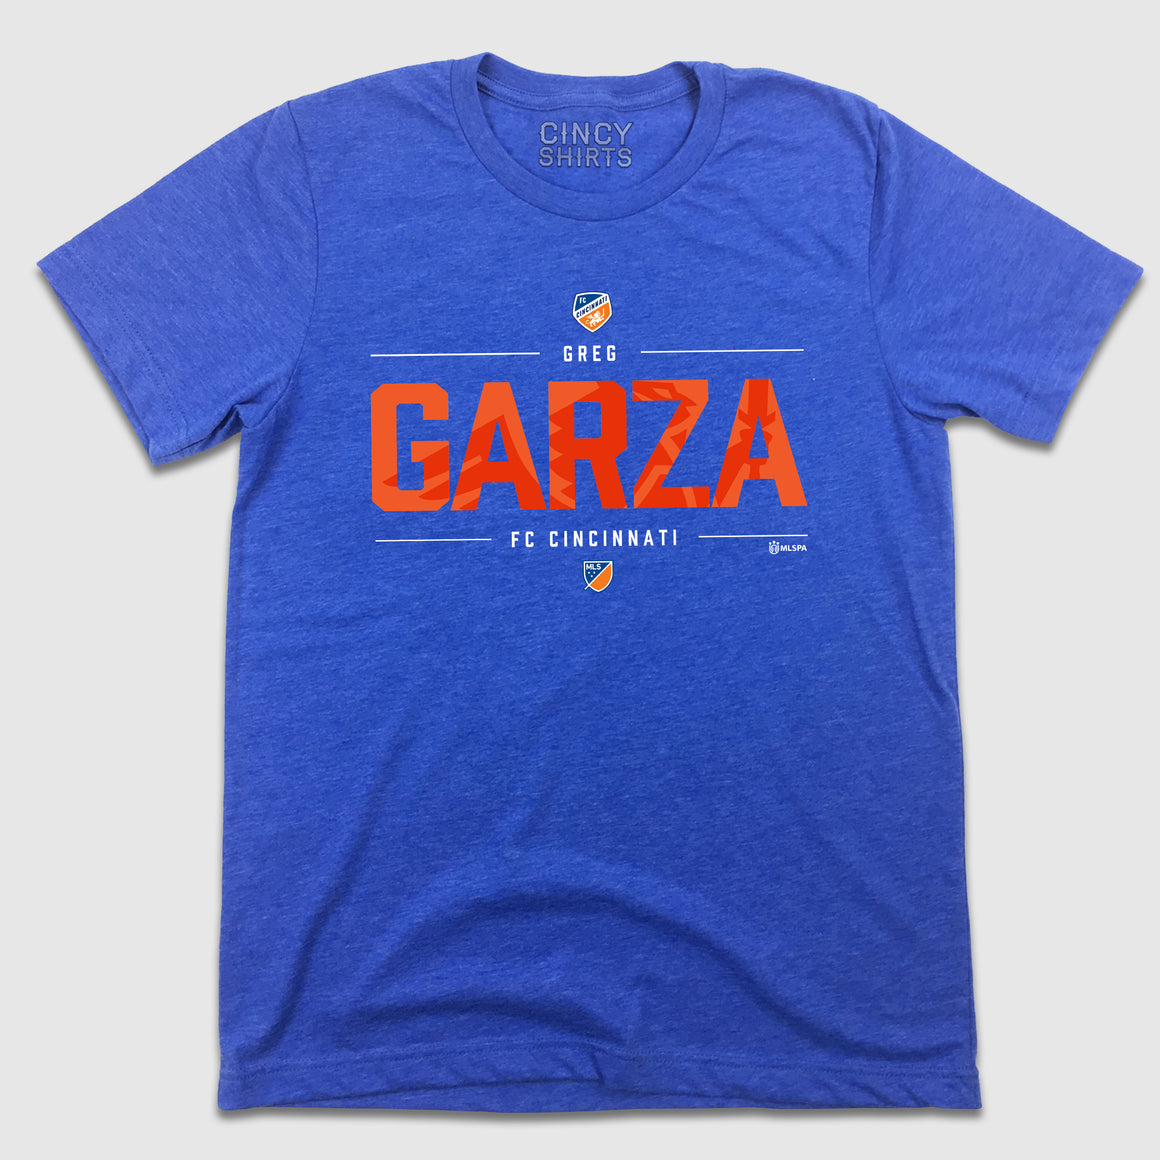 Greg Garza MLS FC Cincinnati T-shirt